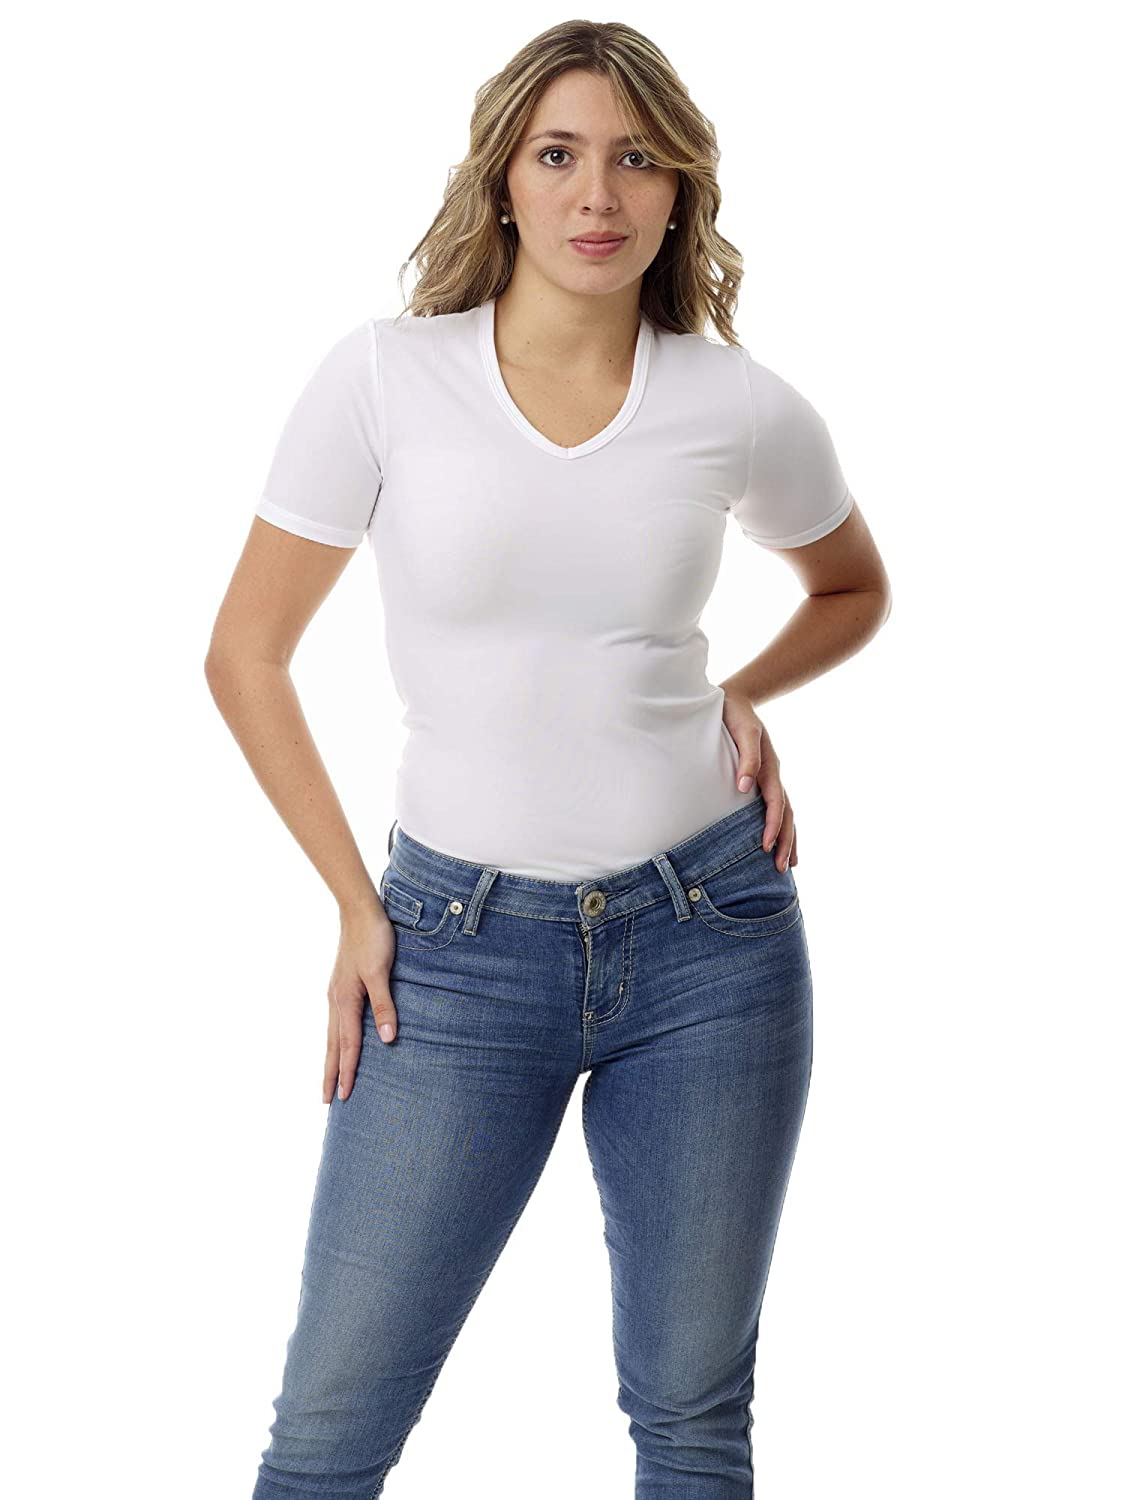 Underworks Womens Microfiber Compression Minimizer V-Neck T-shirt